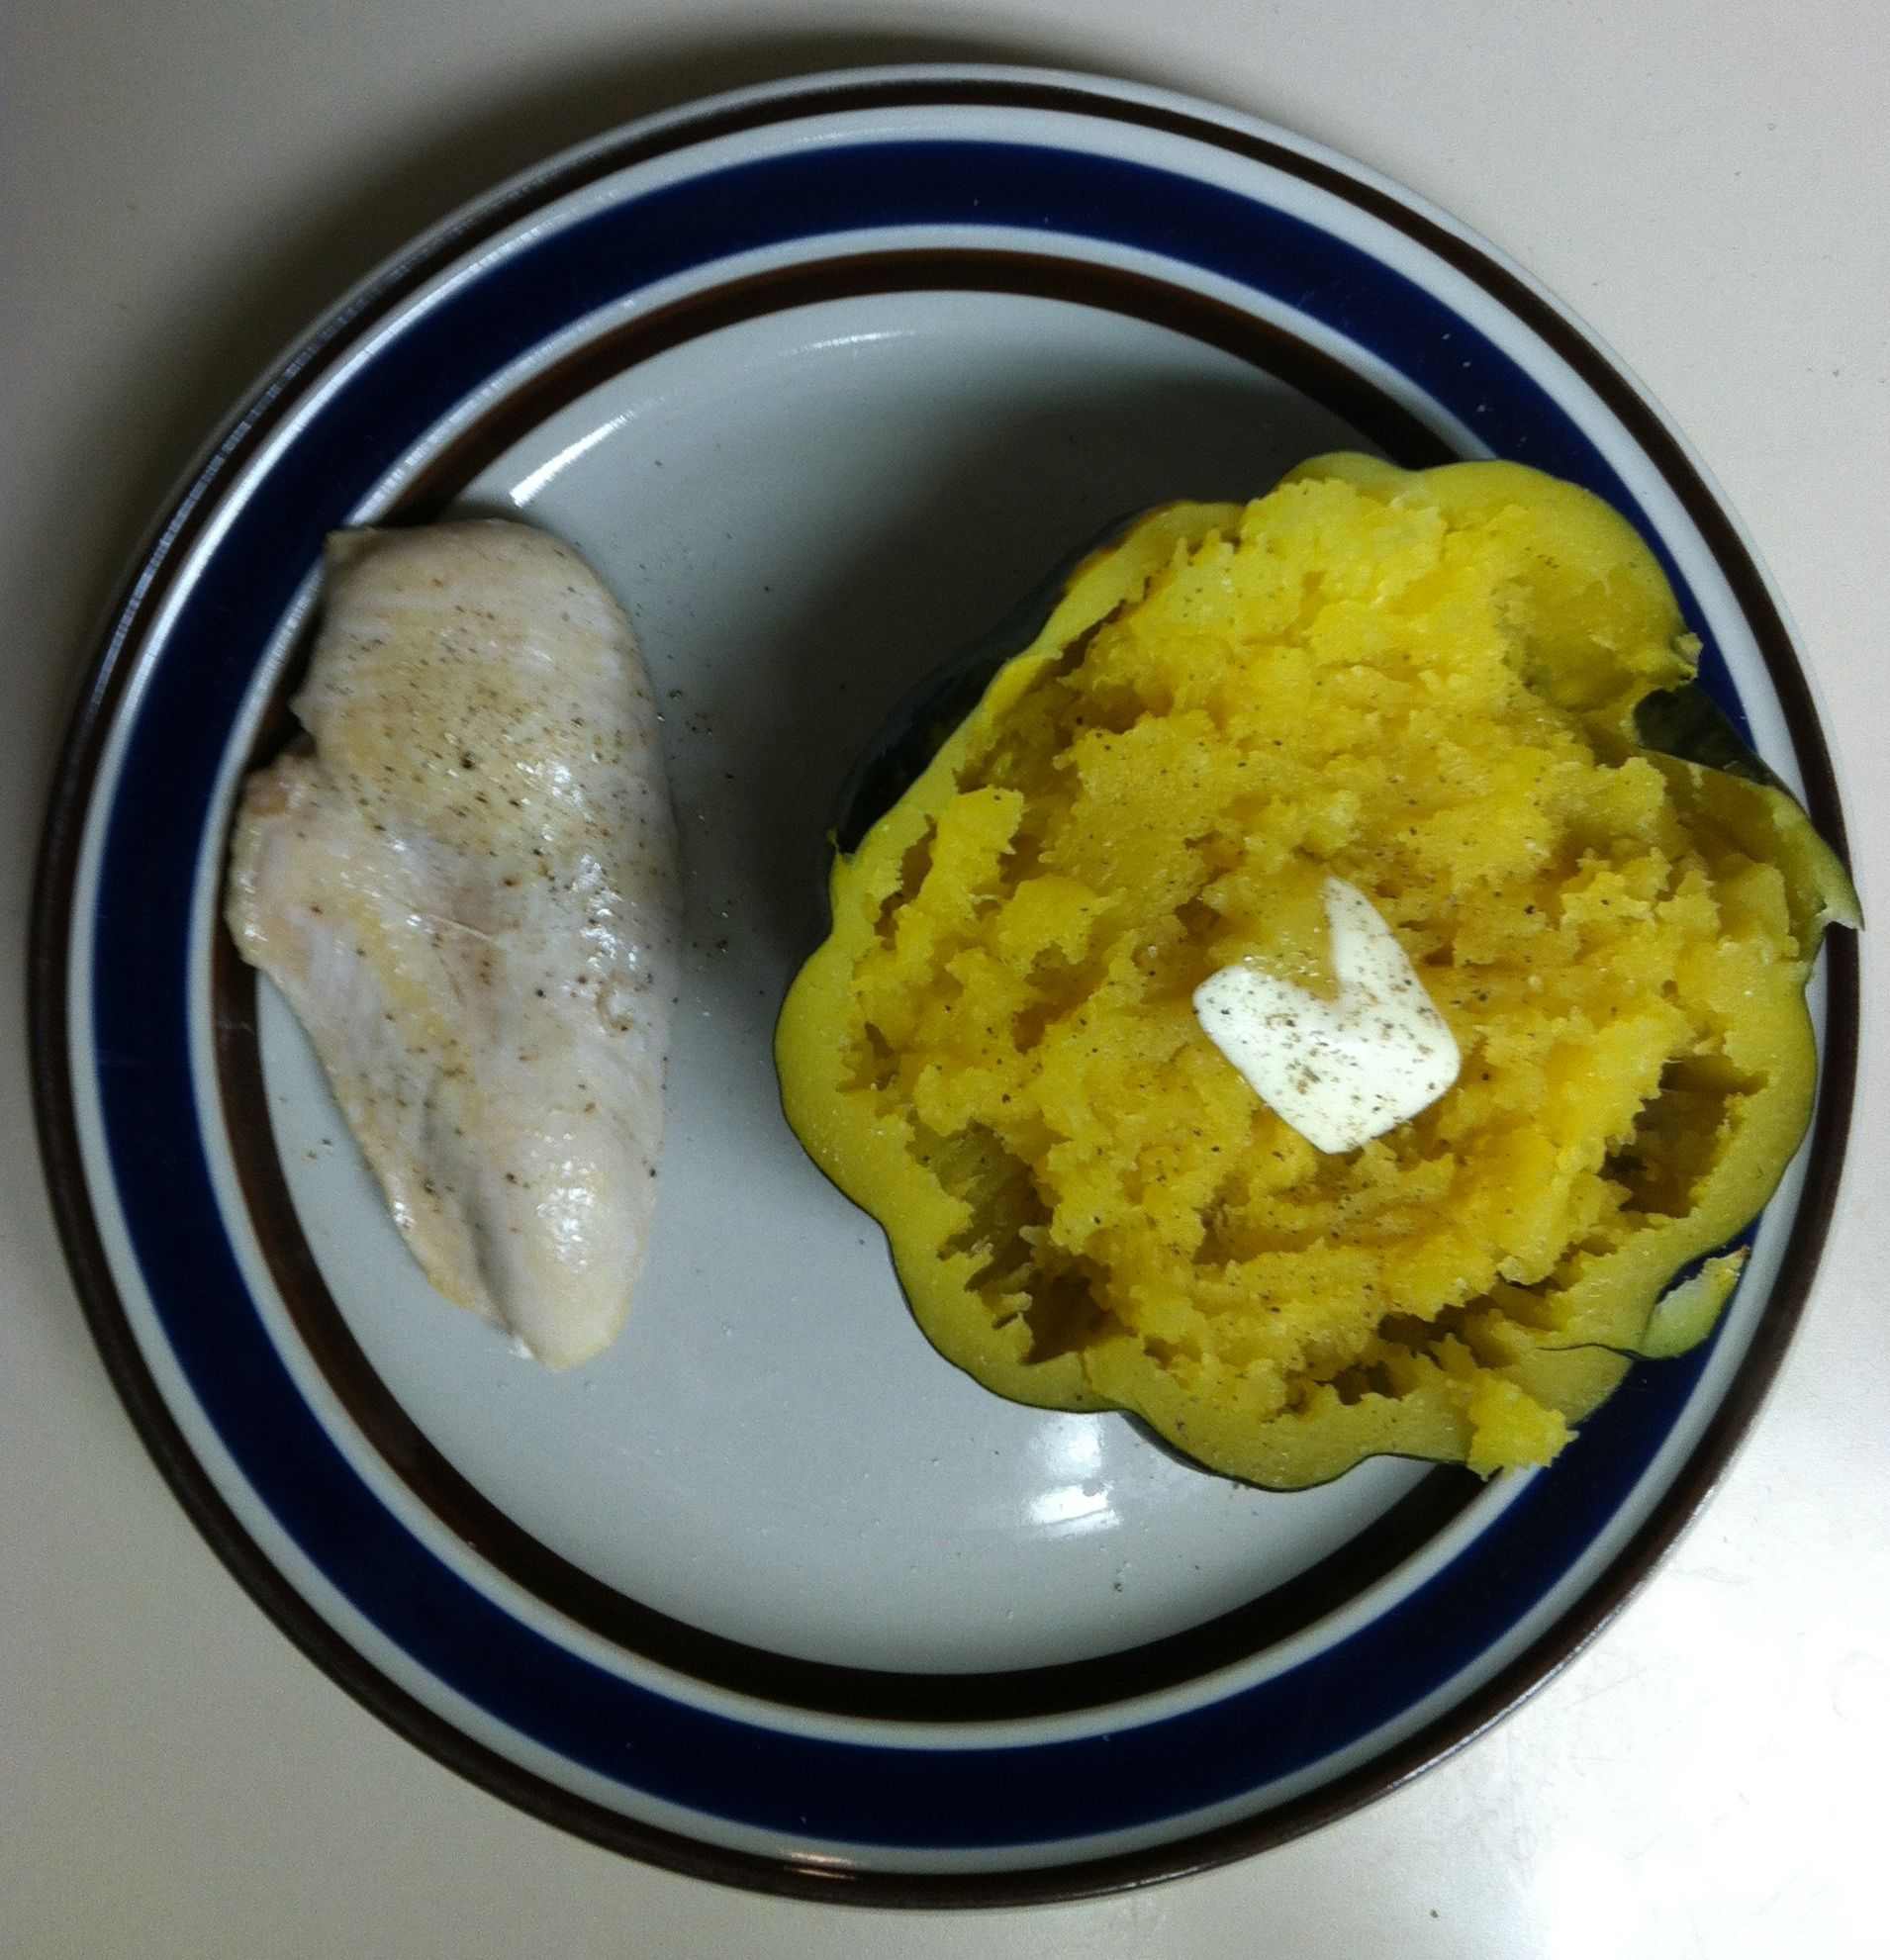 Day 13 Dinner Kym Pan Sauteed Chicken In Coconut Oil And Baked Acorn Squash With A Pat If Butter And Salt A With Images Food Cravings Sauteed Chicken Chicken Fried Rice